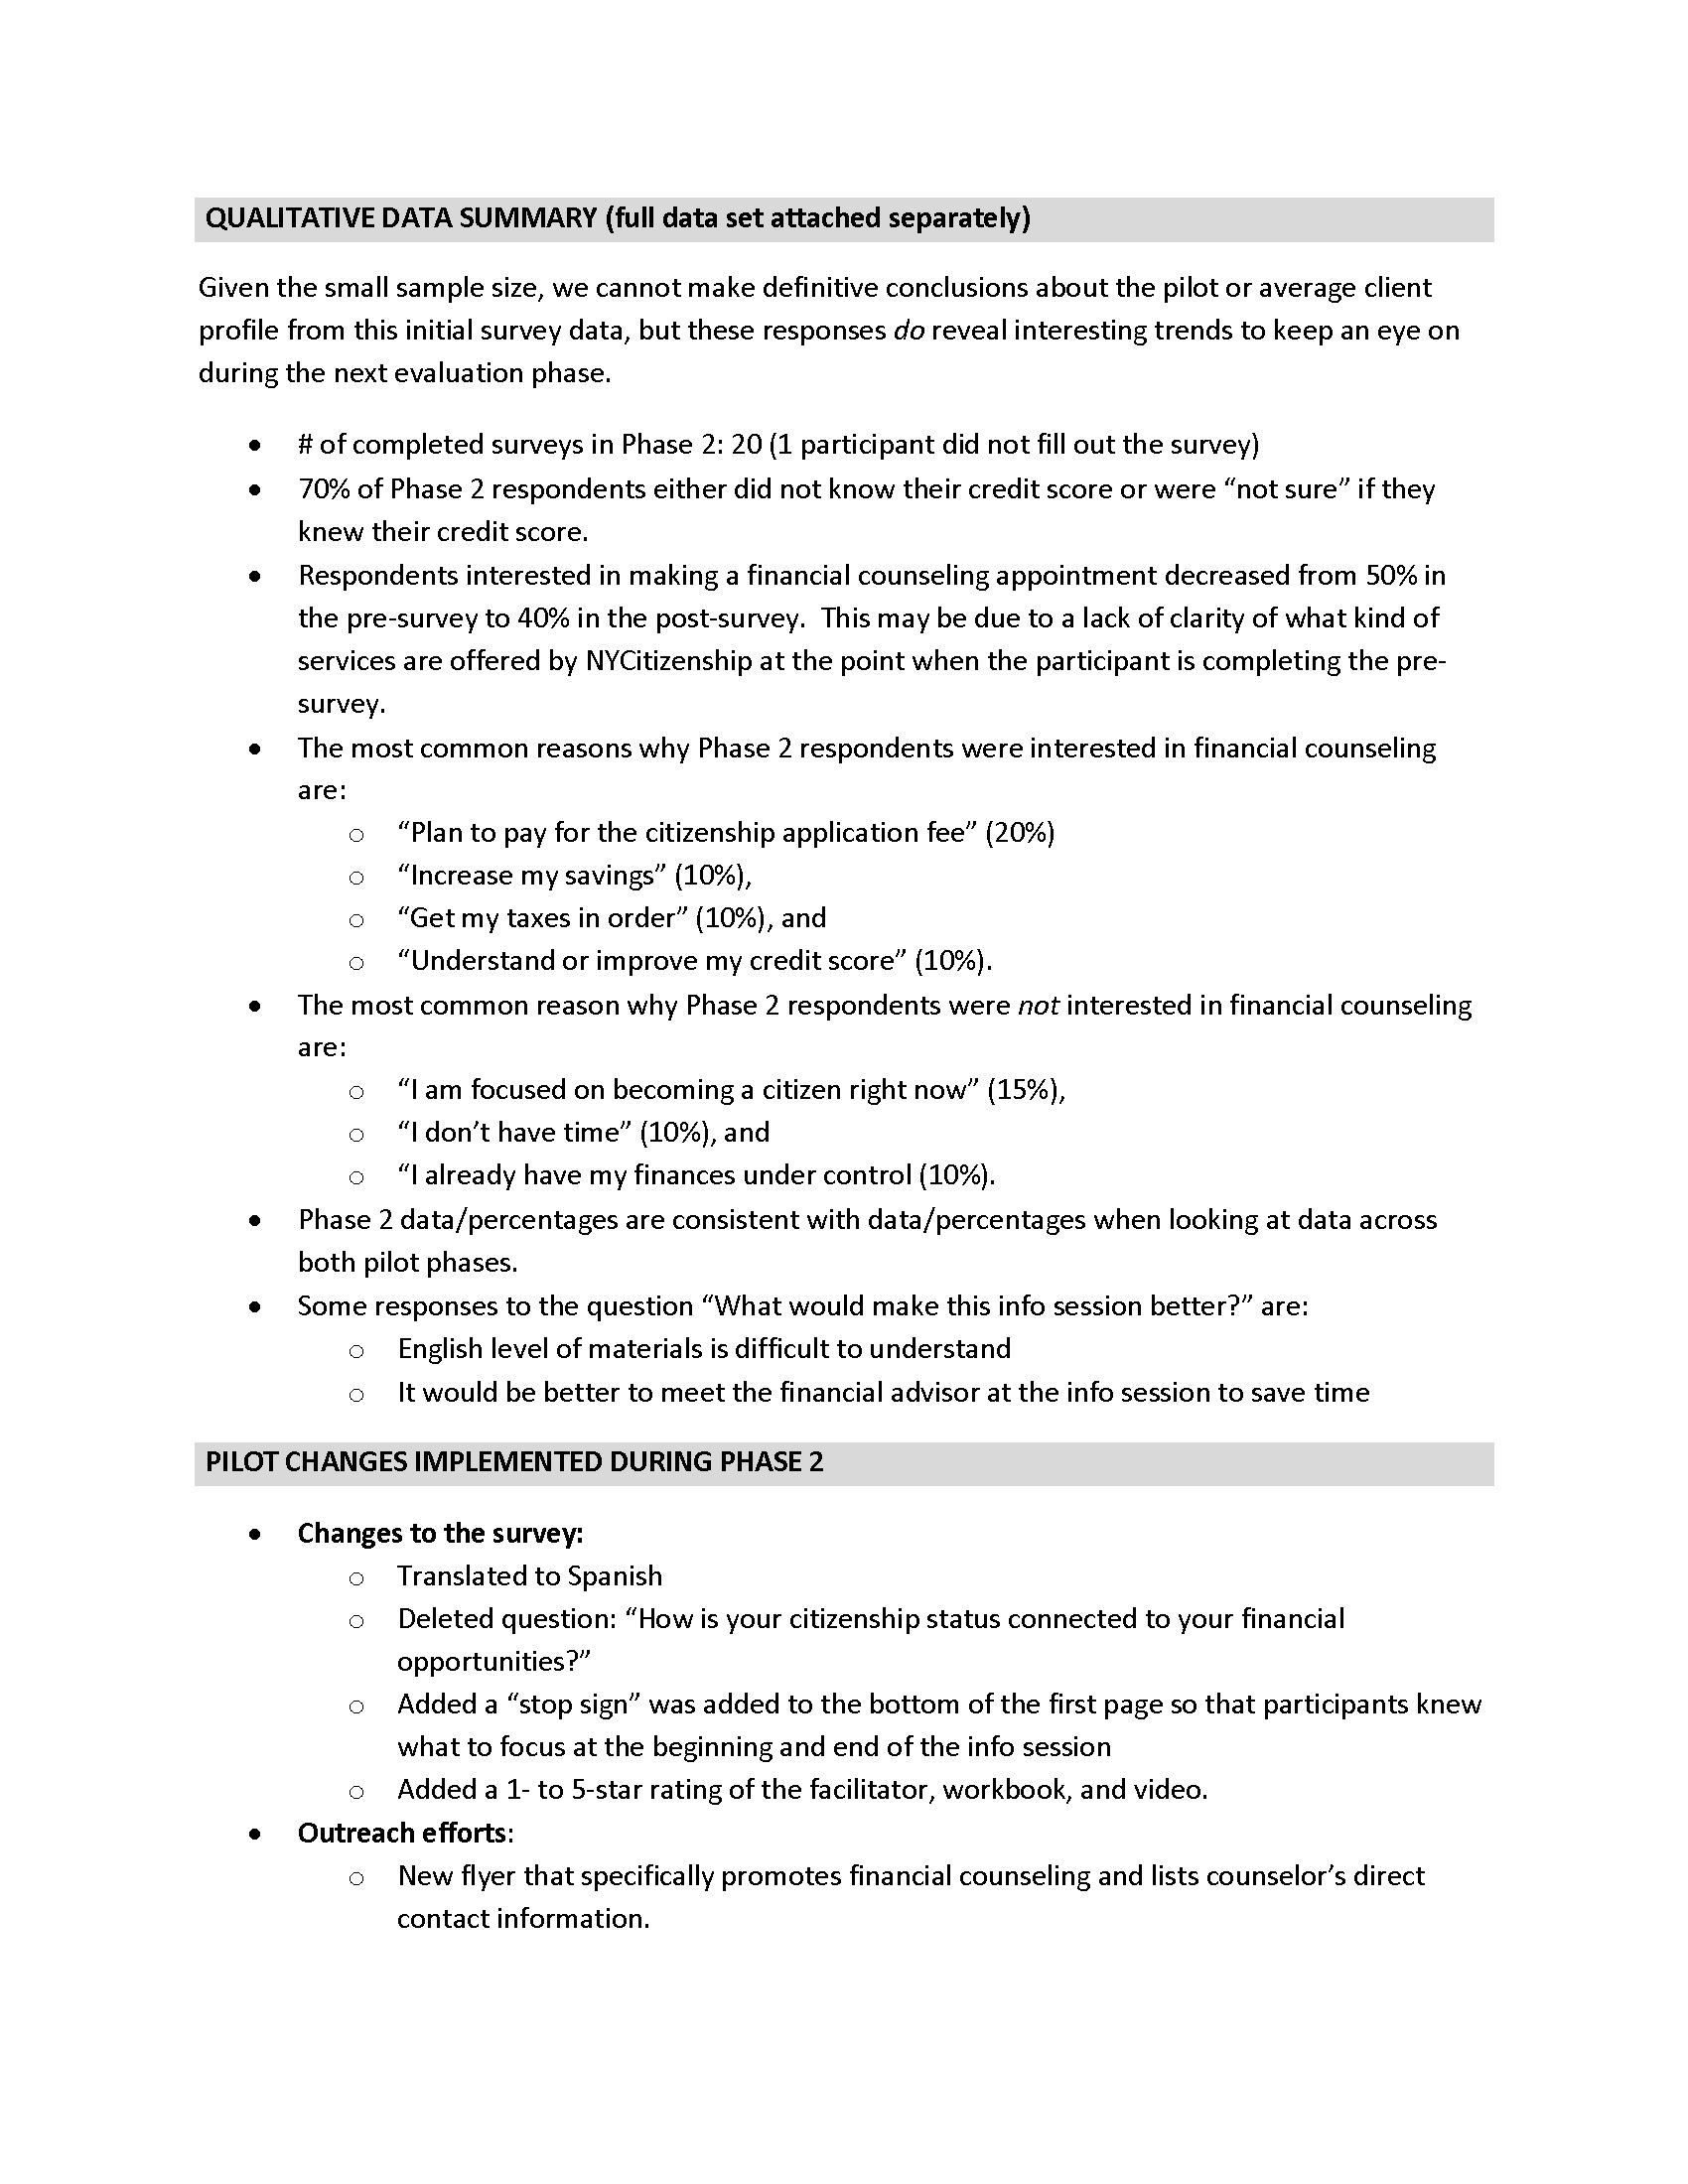 NYCitizenship Parsons Pilot Evaluation - Phase 2_Page_2.jpg